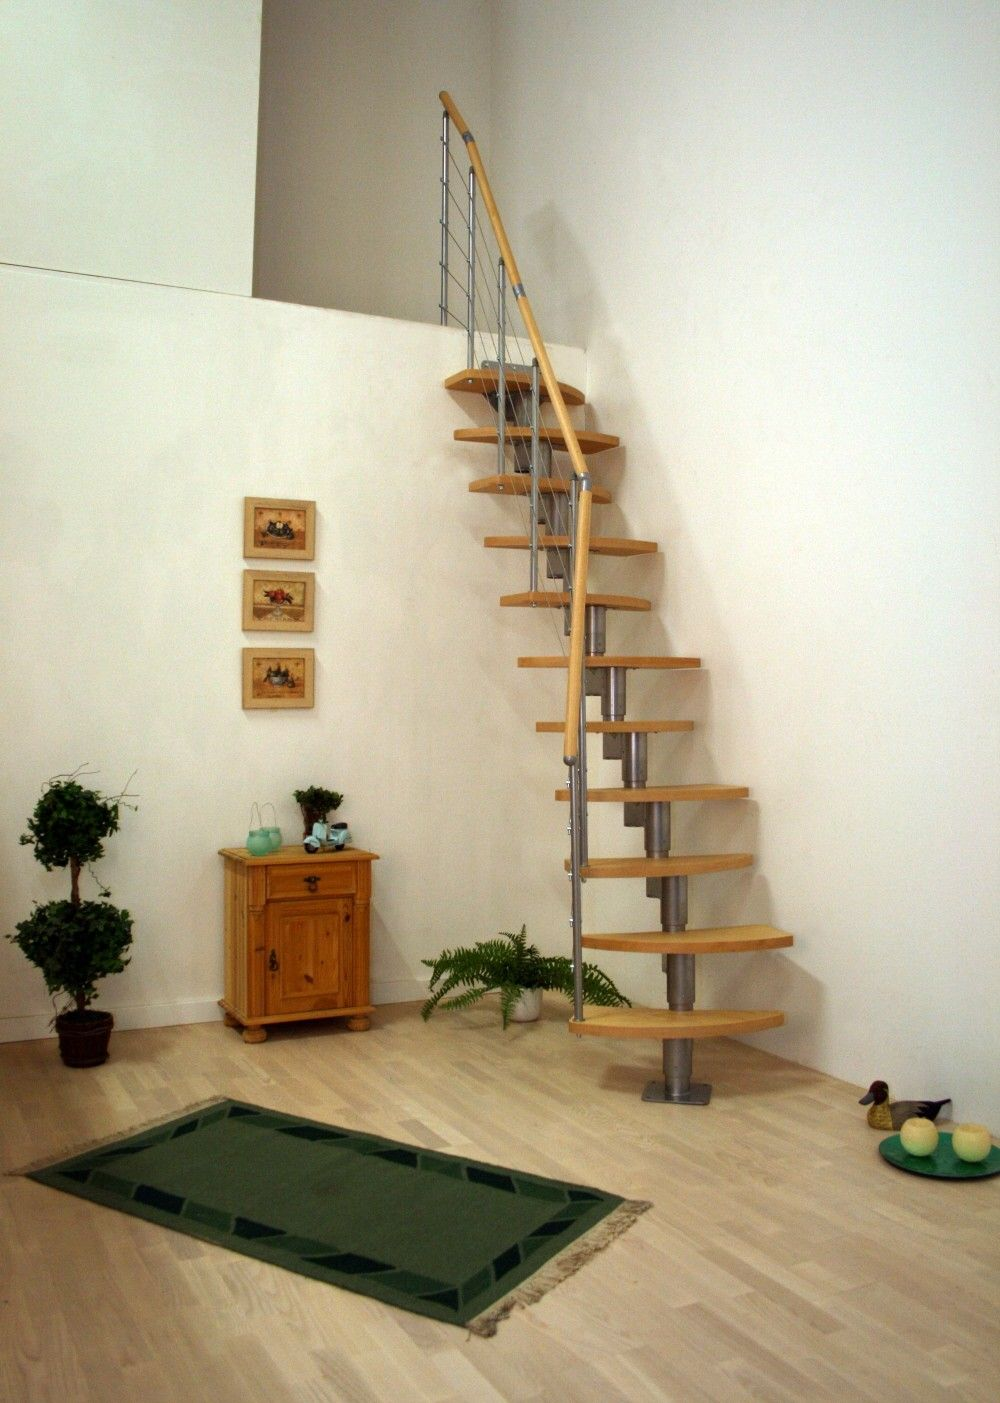 Space saving loft stairs loft centre for the home pinterest loft stairs stair kits and - Small loft space model ...